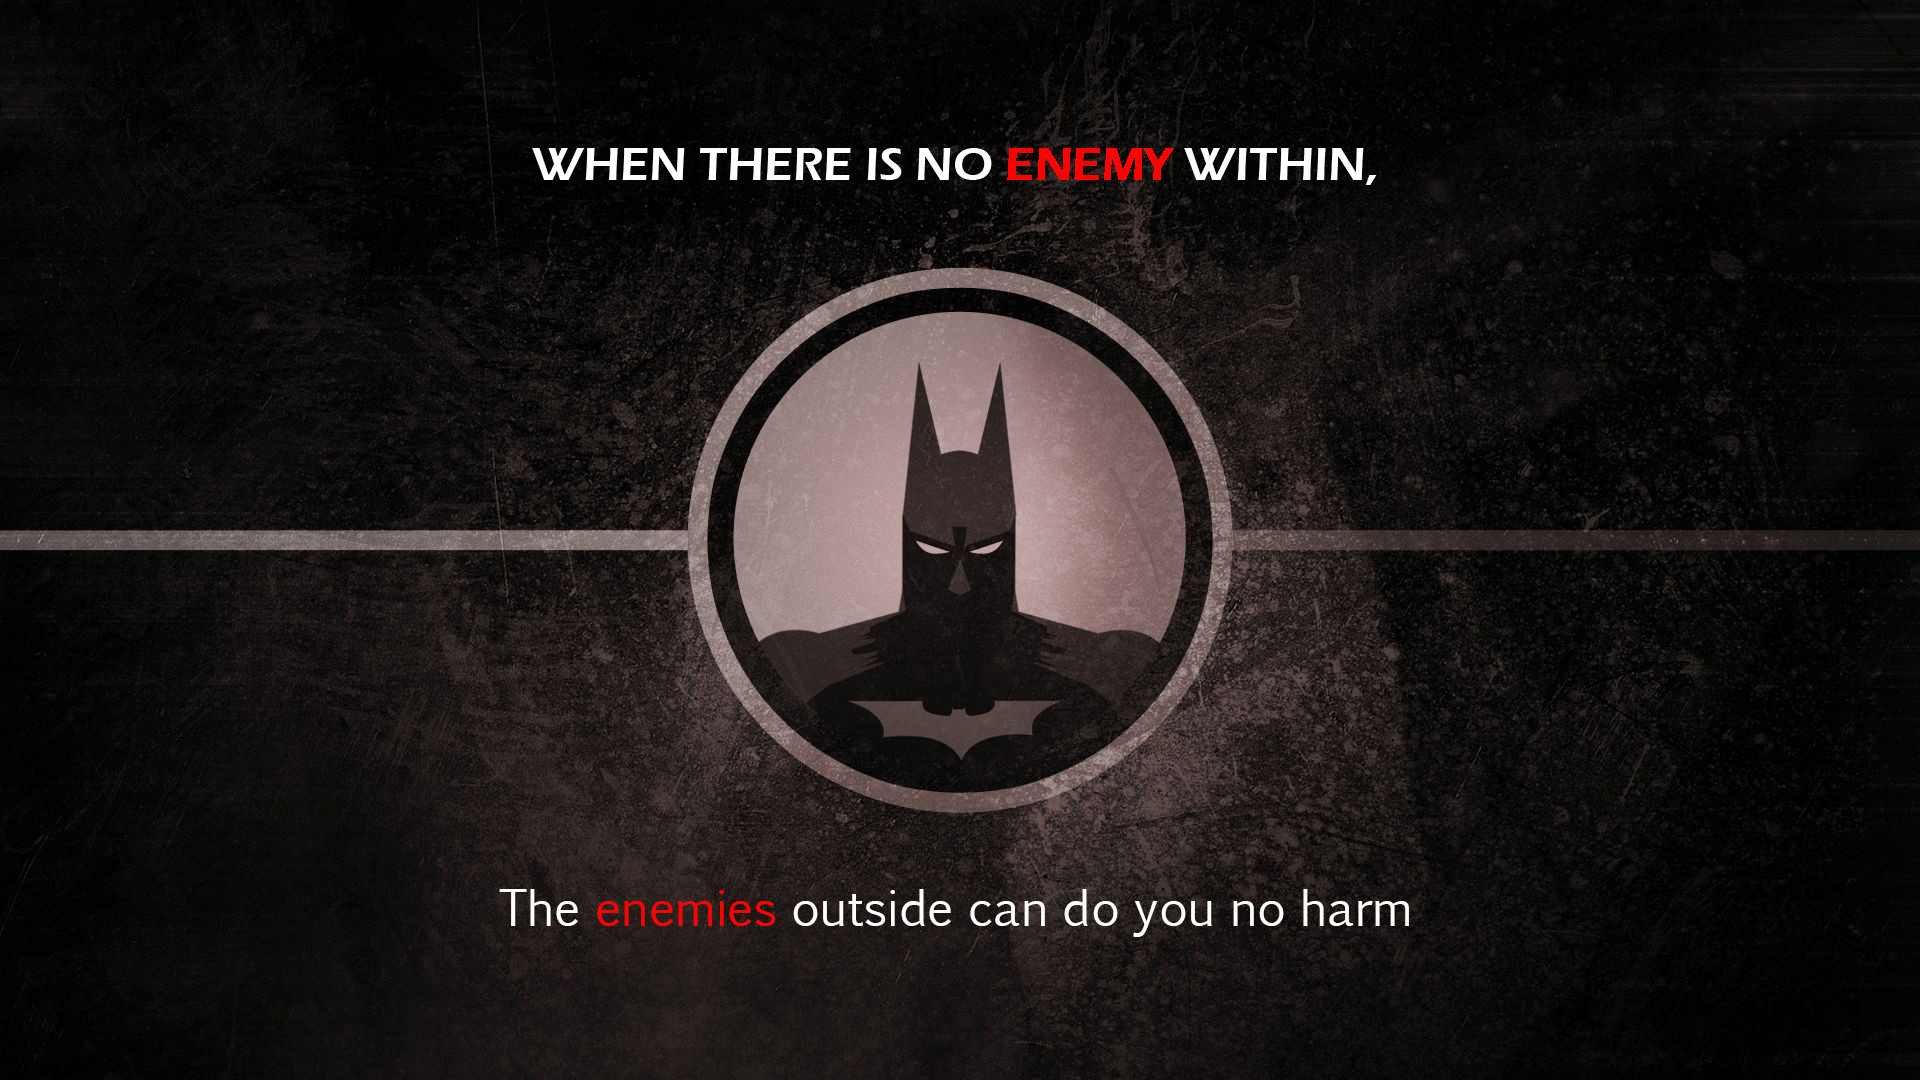 Inspirational Quotes Iphone Wallpaper Hd Batman Quote 1 Full Hd Wallpaper And Background Image